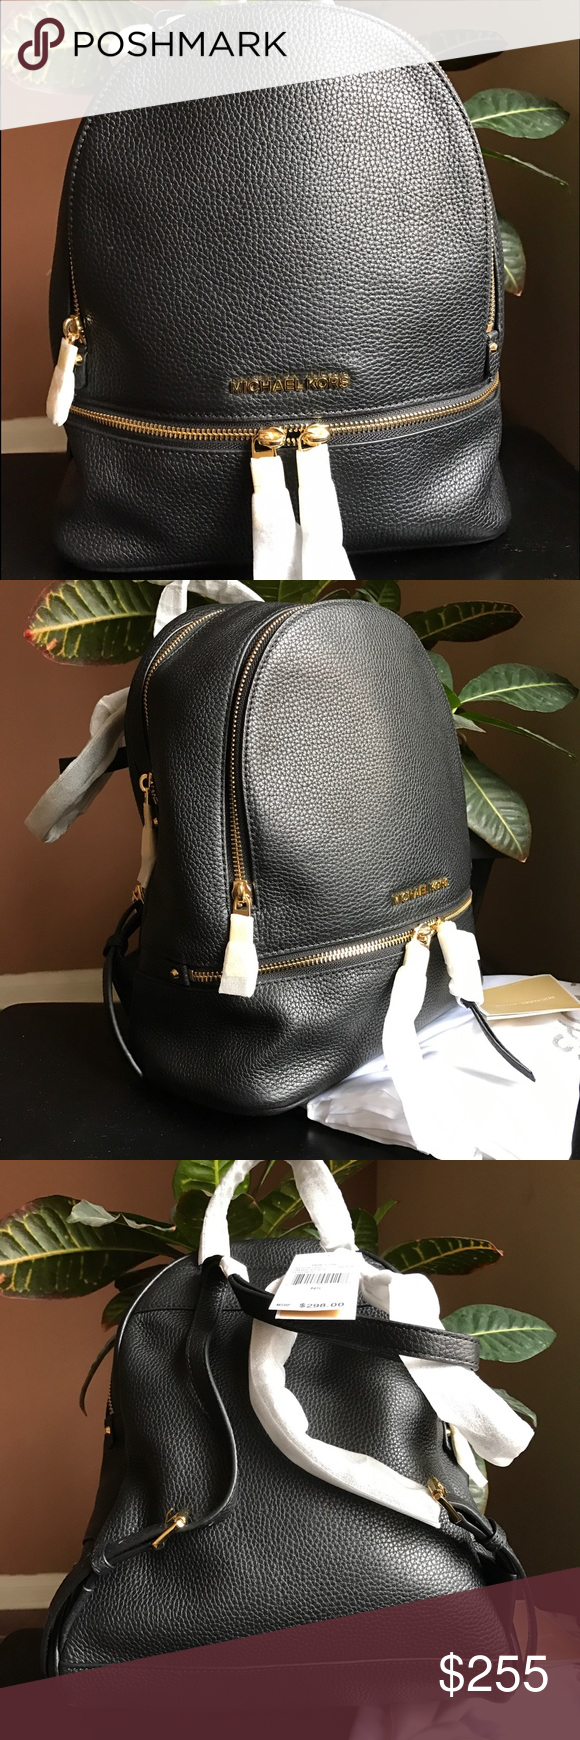 "New Michael Kors leather Zipper backpack New Michael Kors black leather zipper backpack, brand new with tag and dust bag. Measure: 14.75"" x12"" x 6"". 100% authentic. Price firm. No trade. Thx. Michael Kors Bags Backpacks"